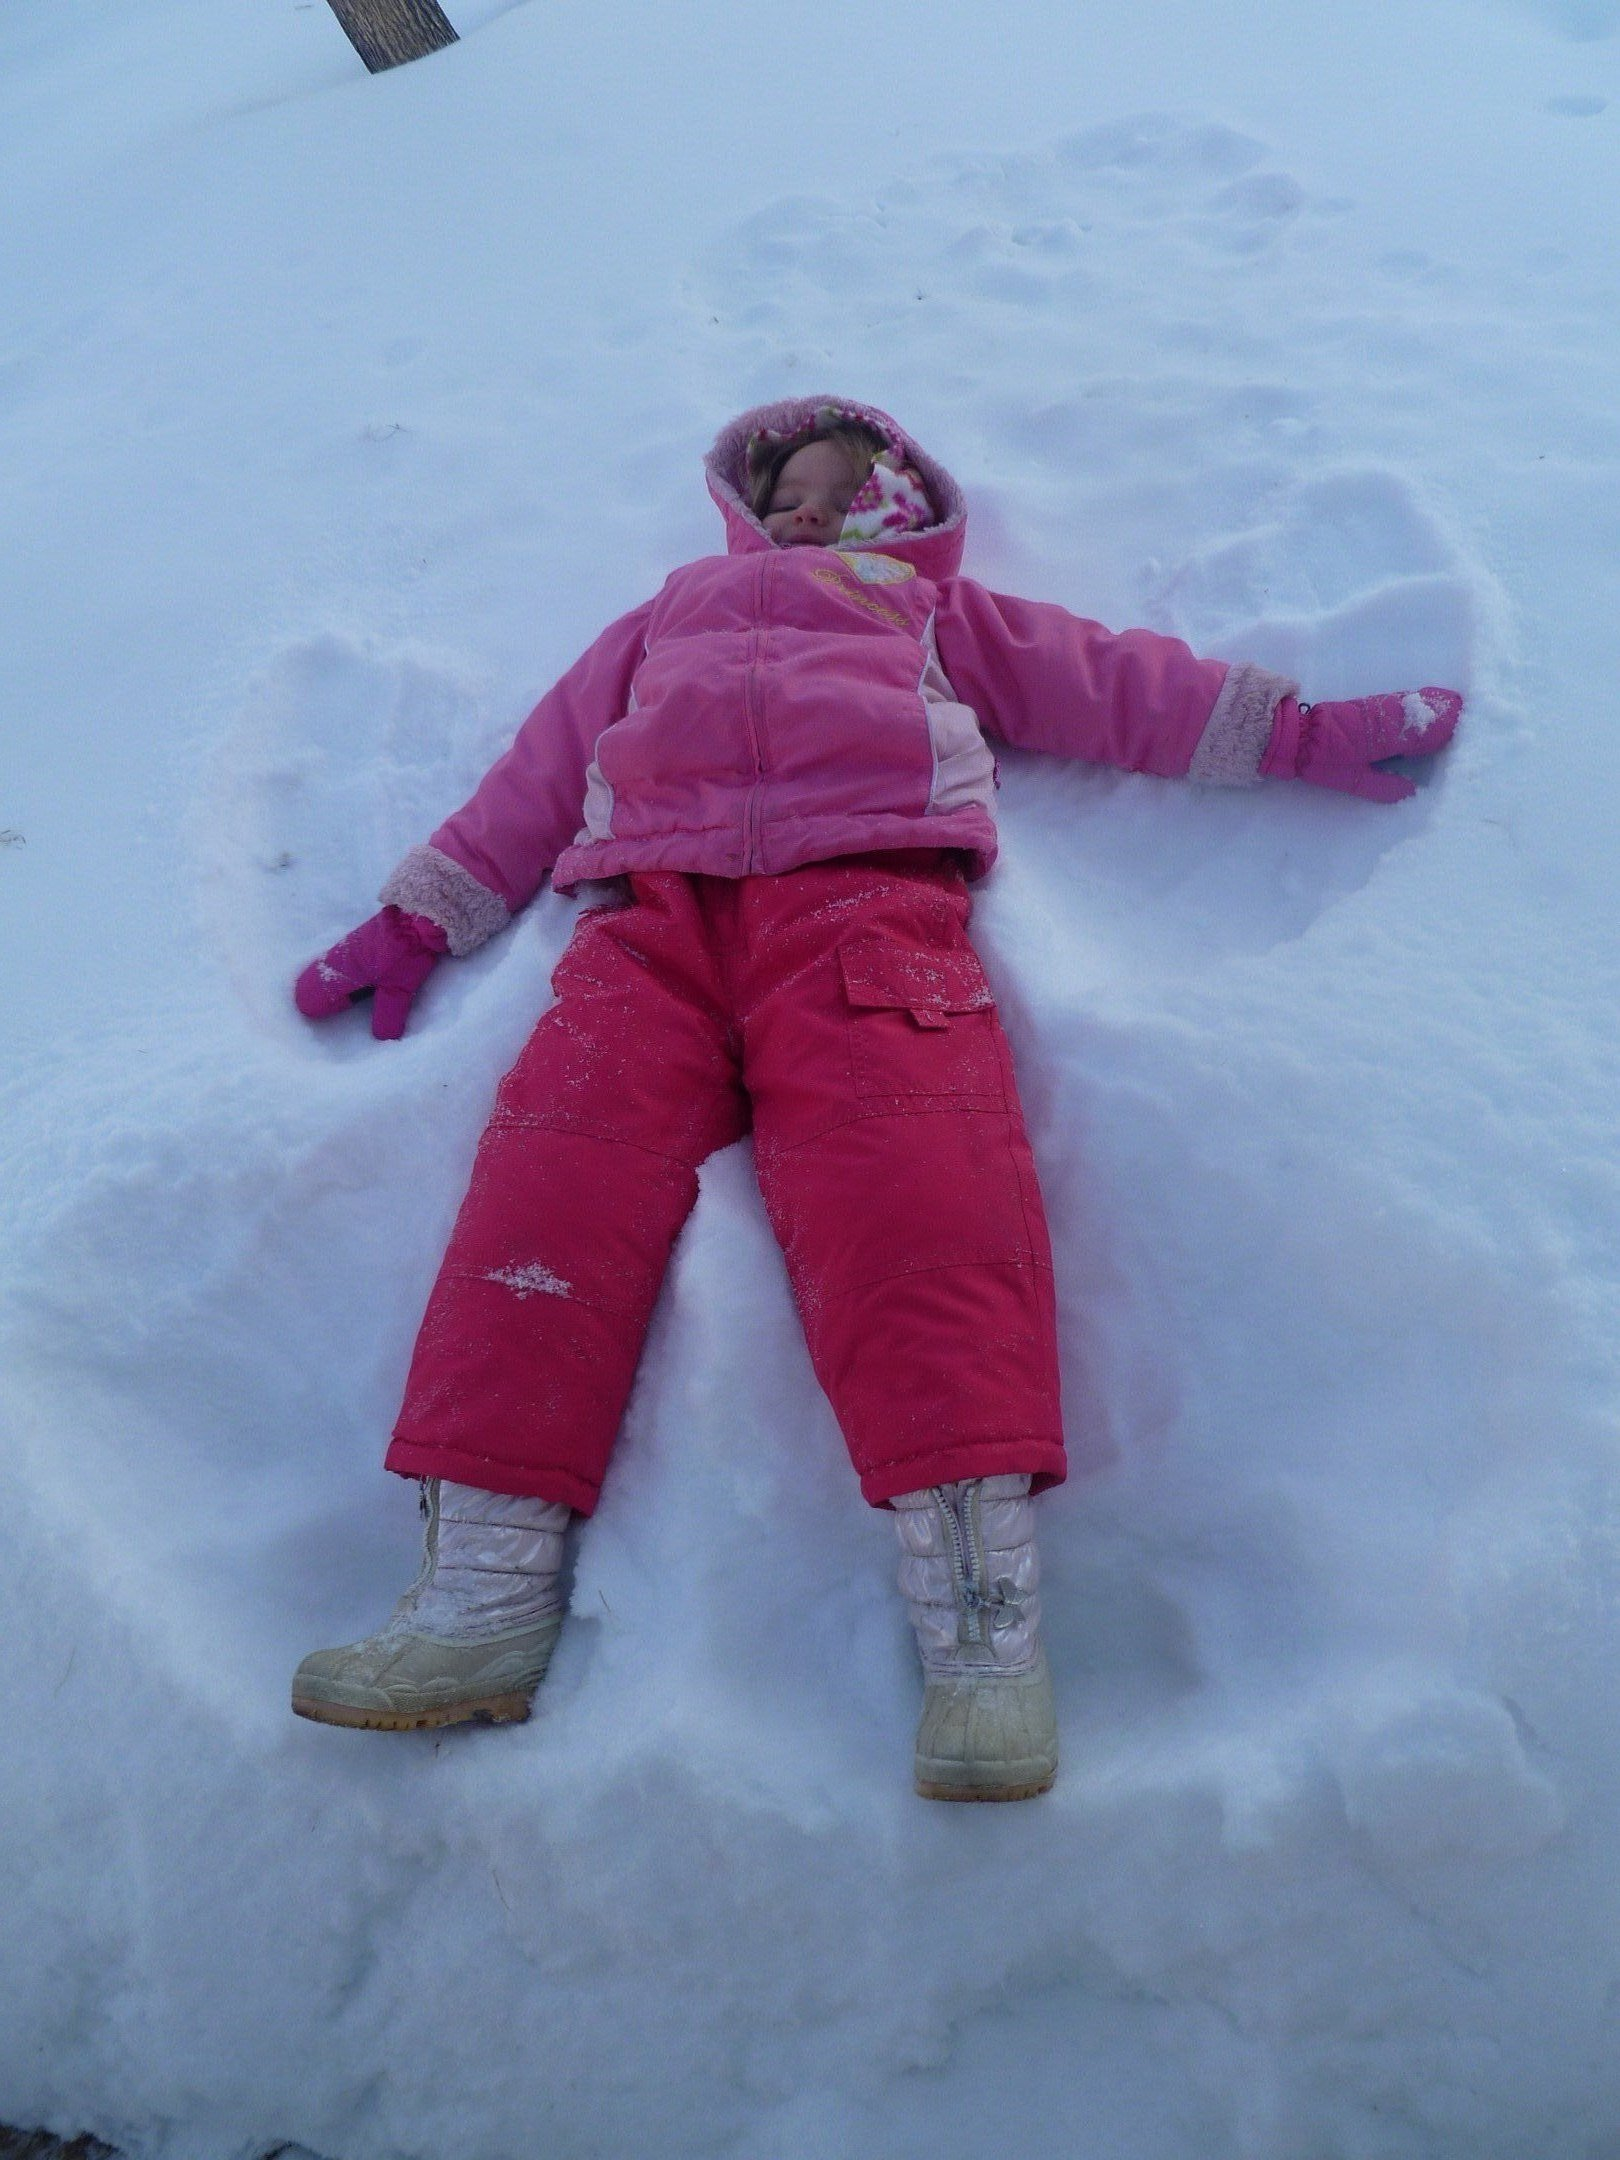 Allyssa making snow angels